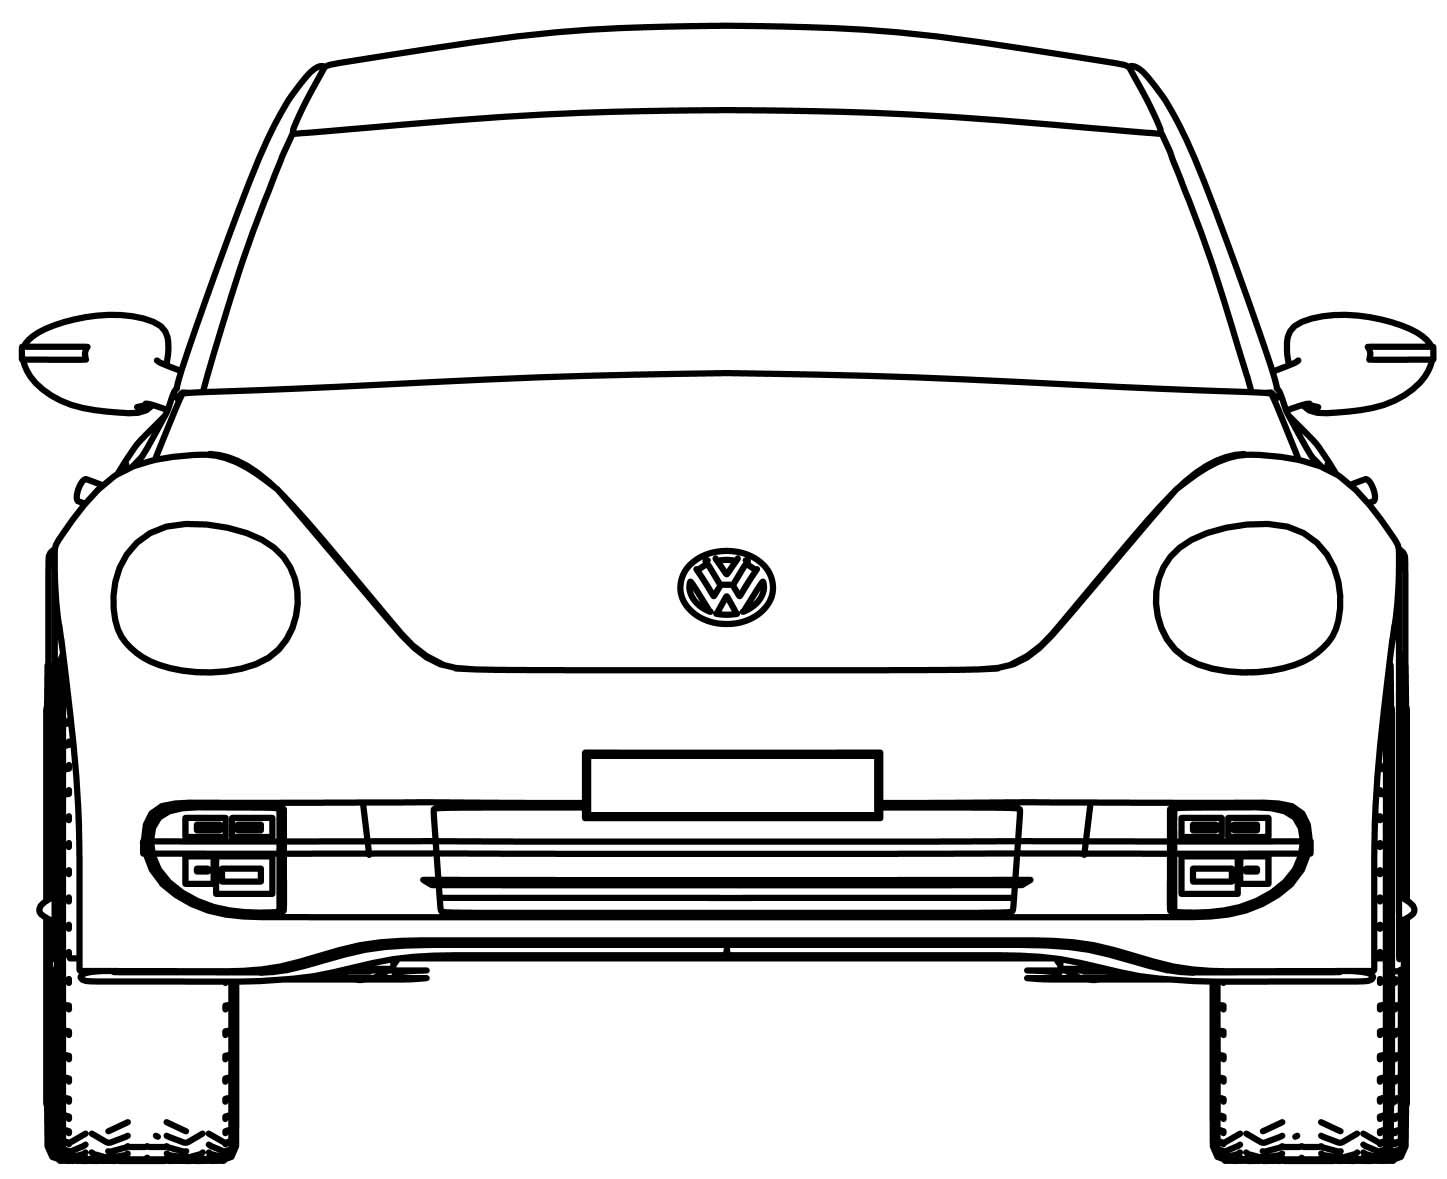 Vw Volkswagen Beetle Front View Coloring Page